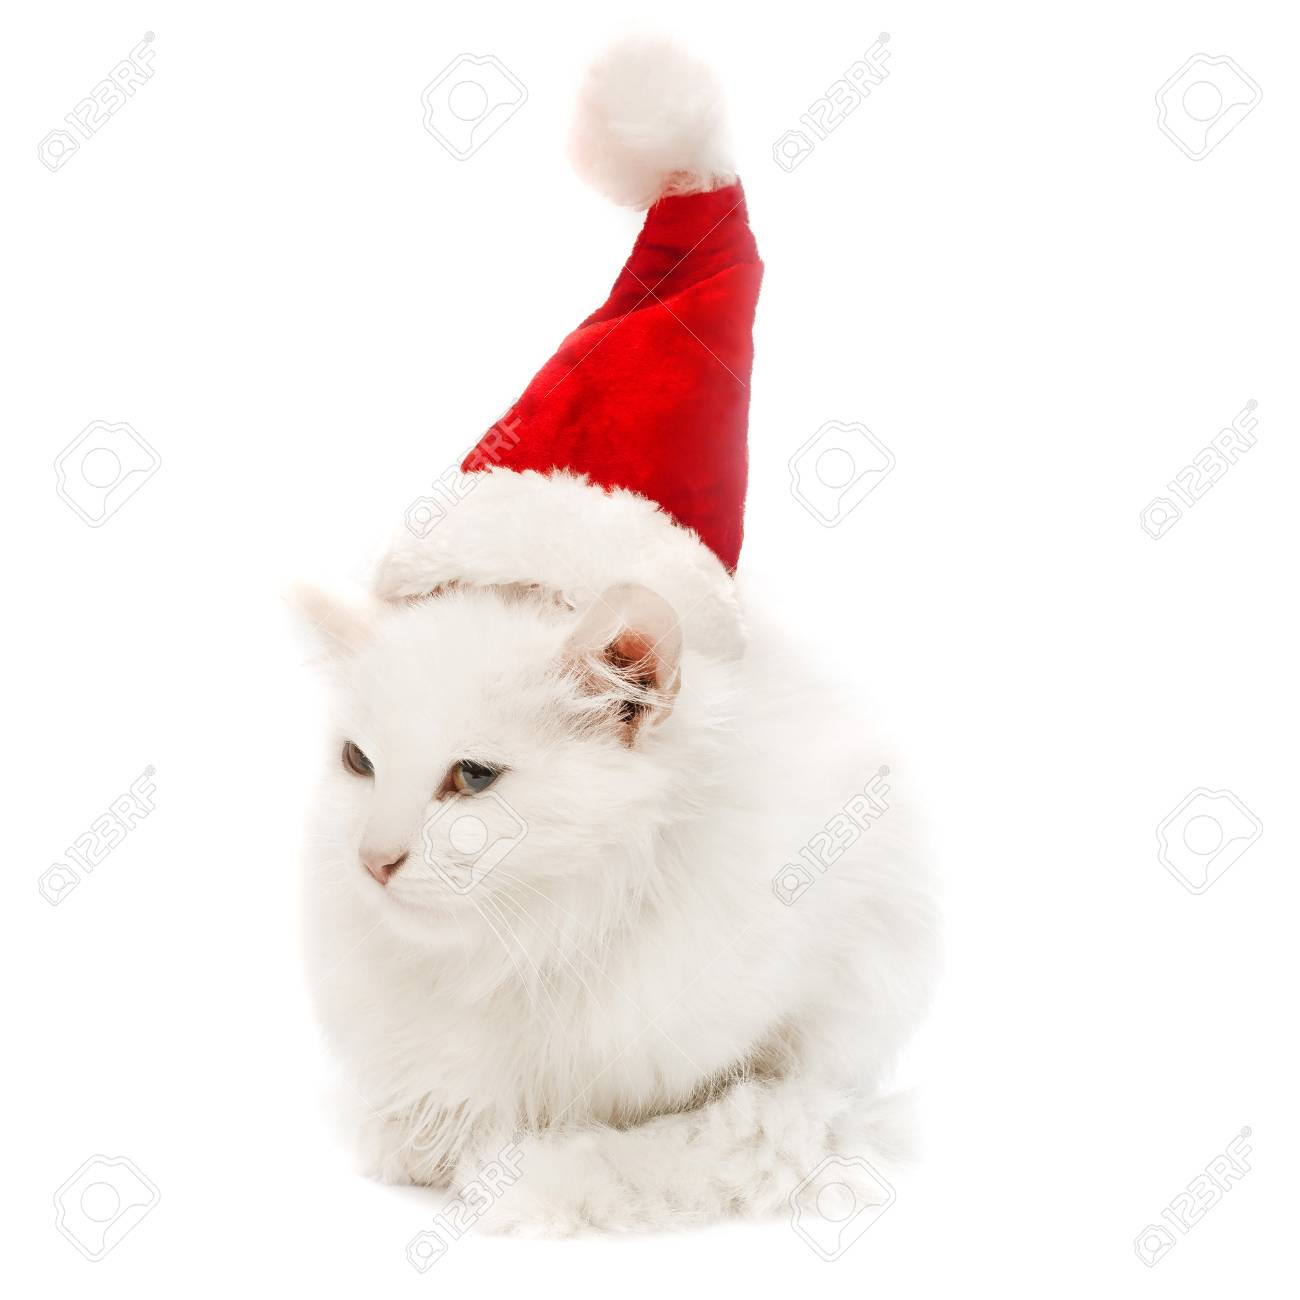 White Christmas Cat In The Hat Isolated On White Background Stock Photo Picture And Royalty Free Image Image 58423079